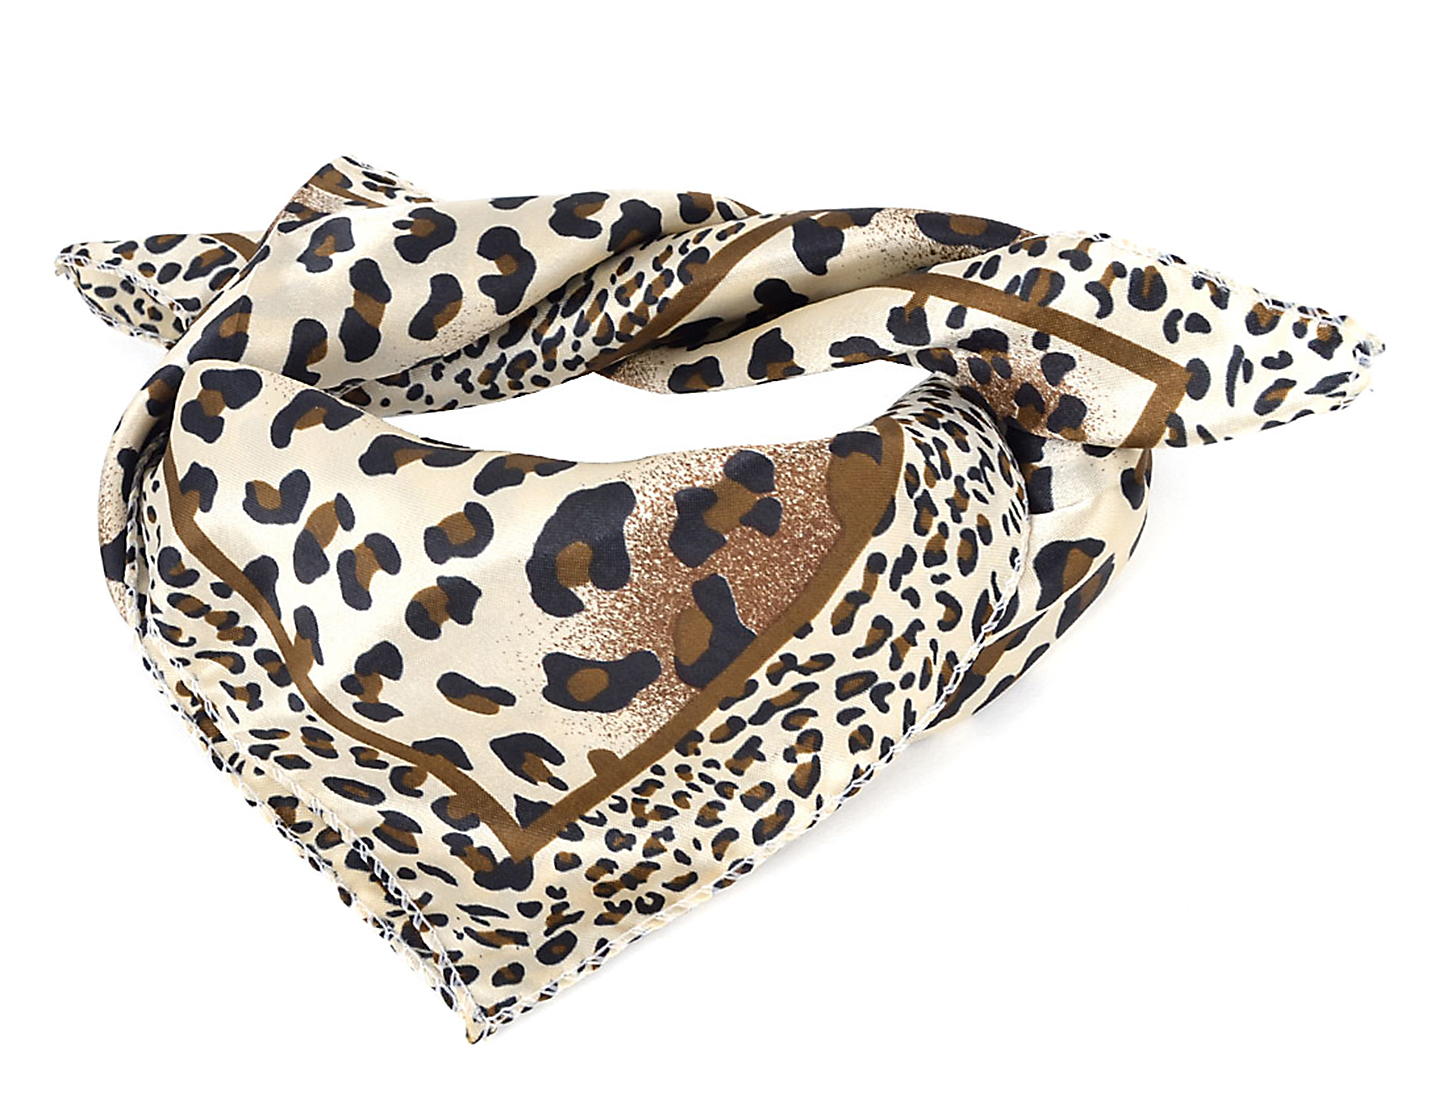 Lady Women Allover Leopard Pattern Beige Black Brown Square Soft Polyester Scarf Shawl Wrap